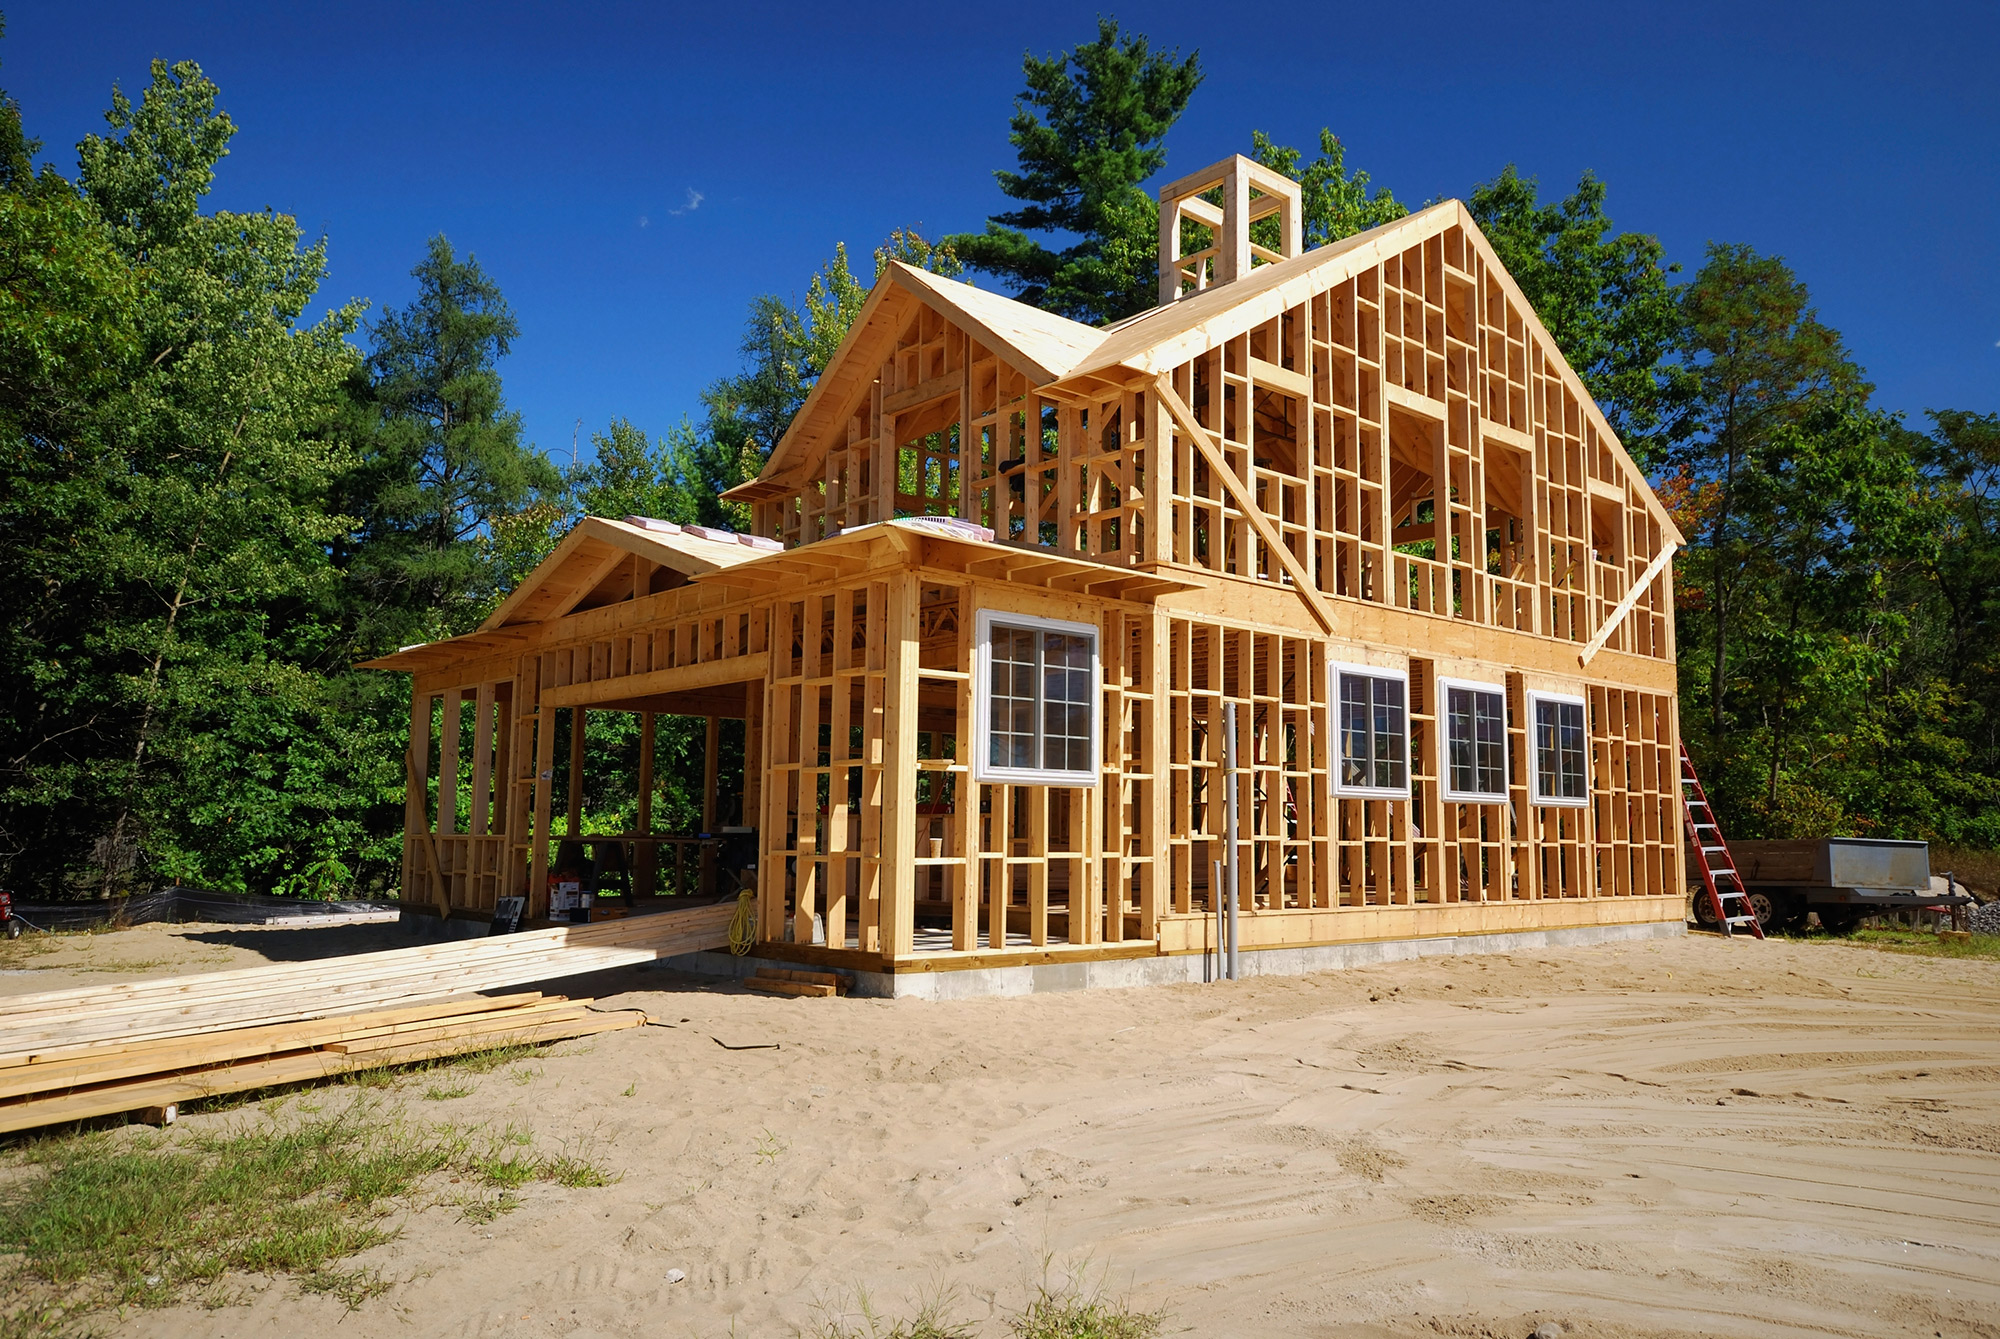 Free photo: House Construction - Builders, Constructions, House - Free  Download - Jooinn